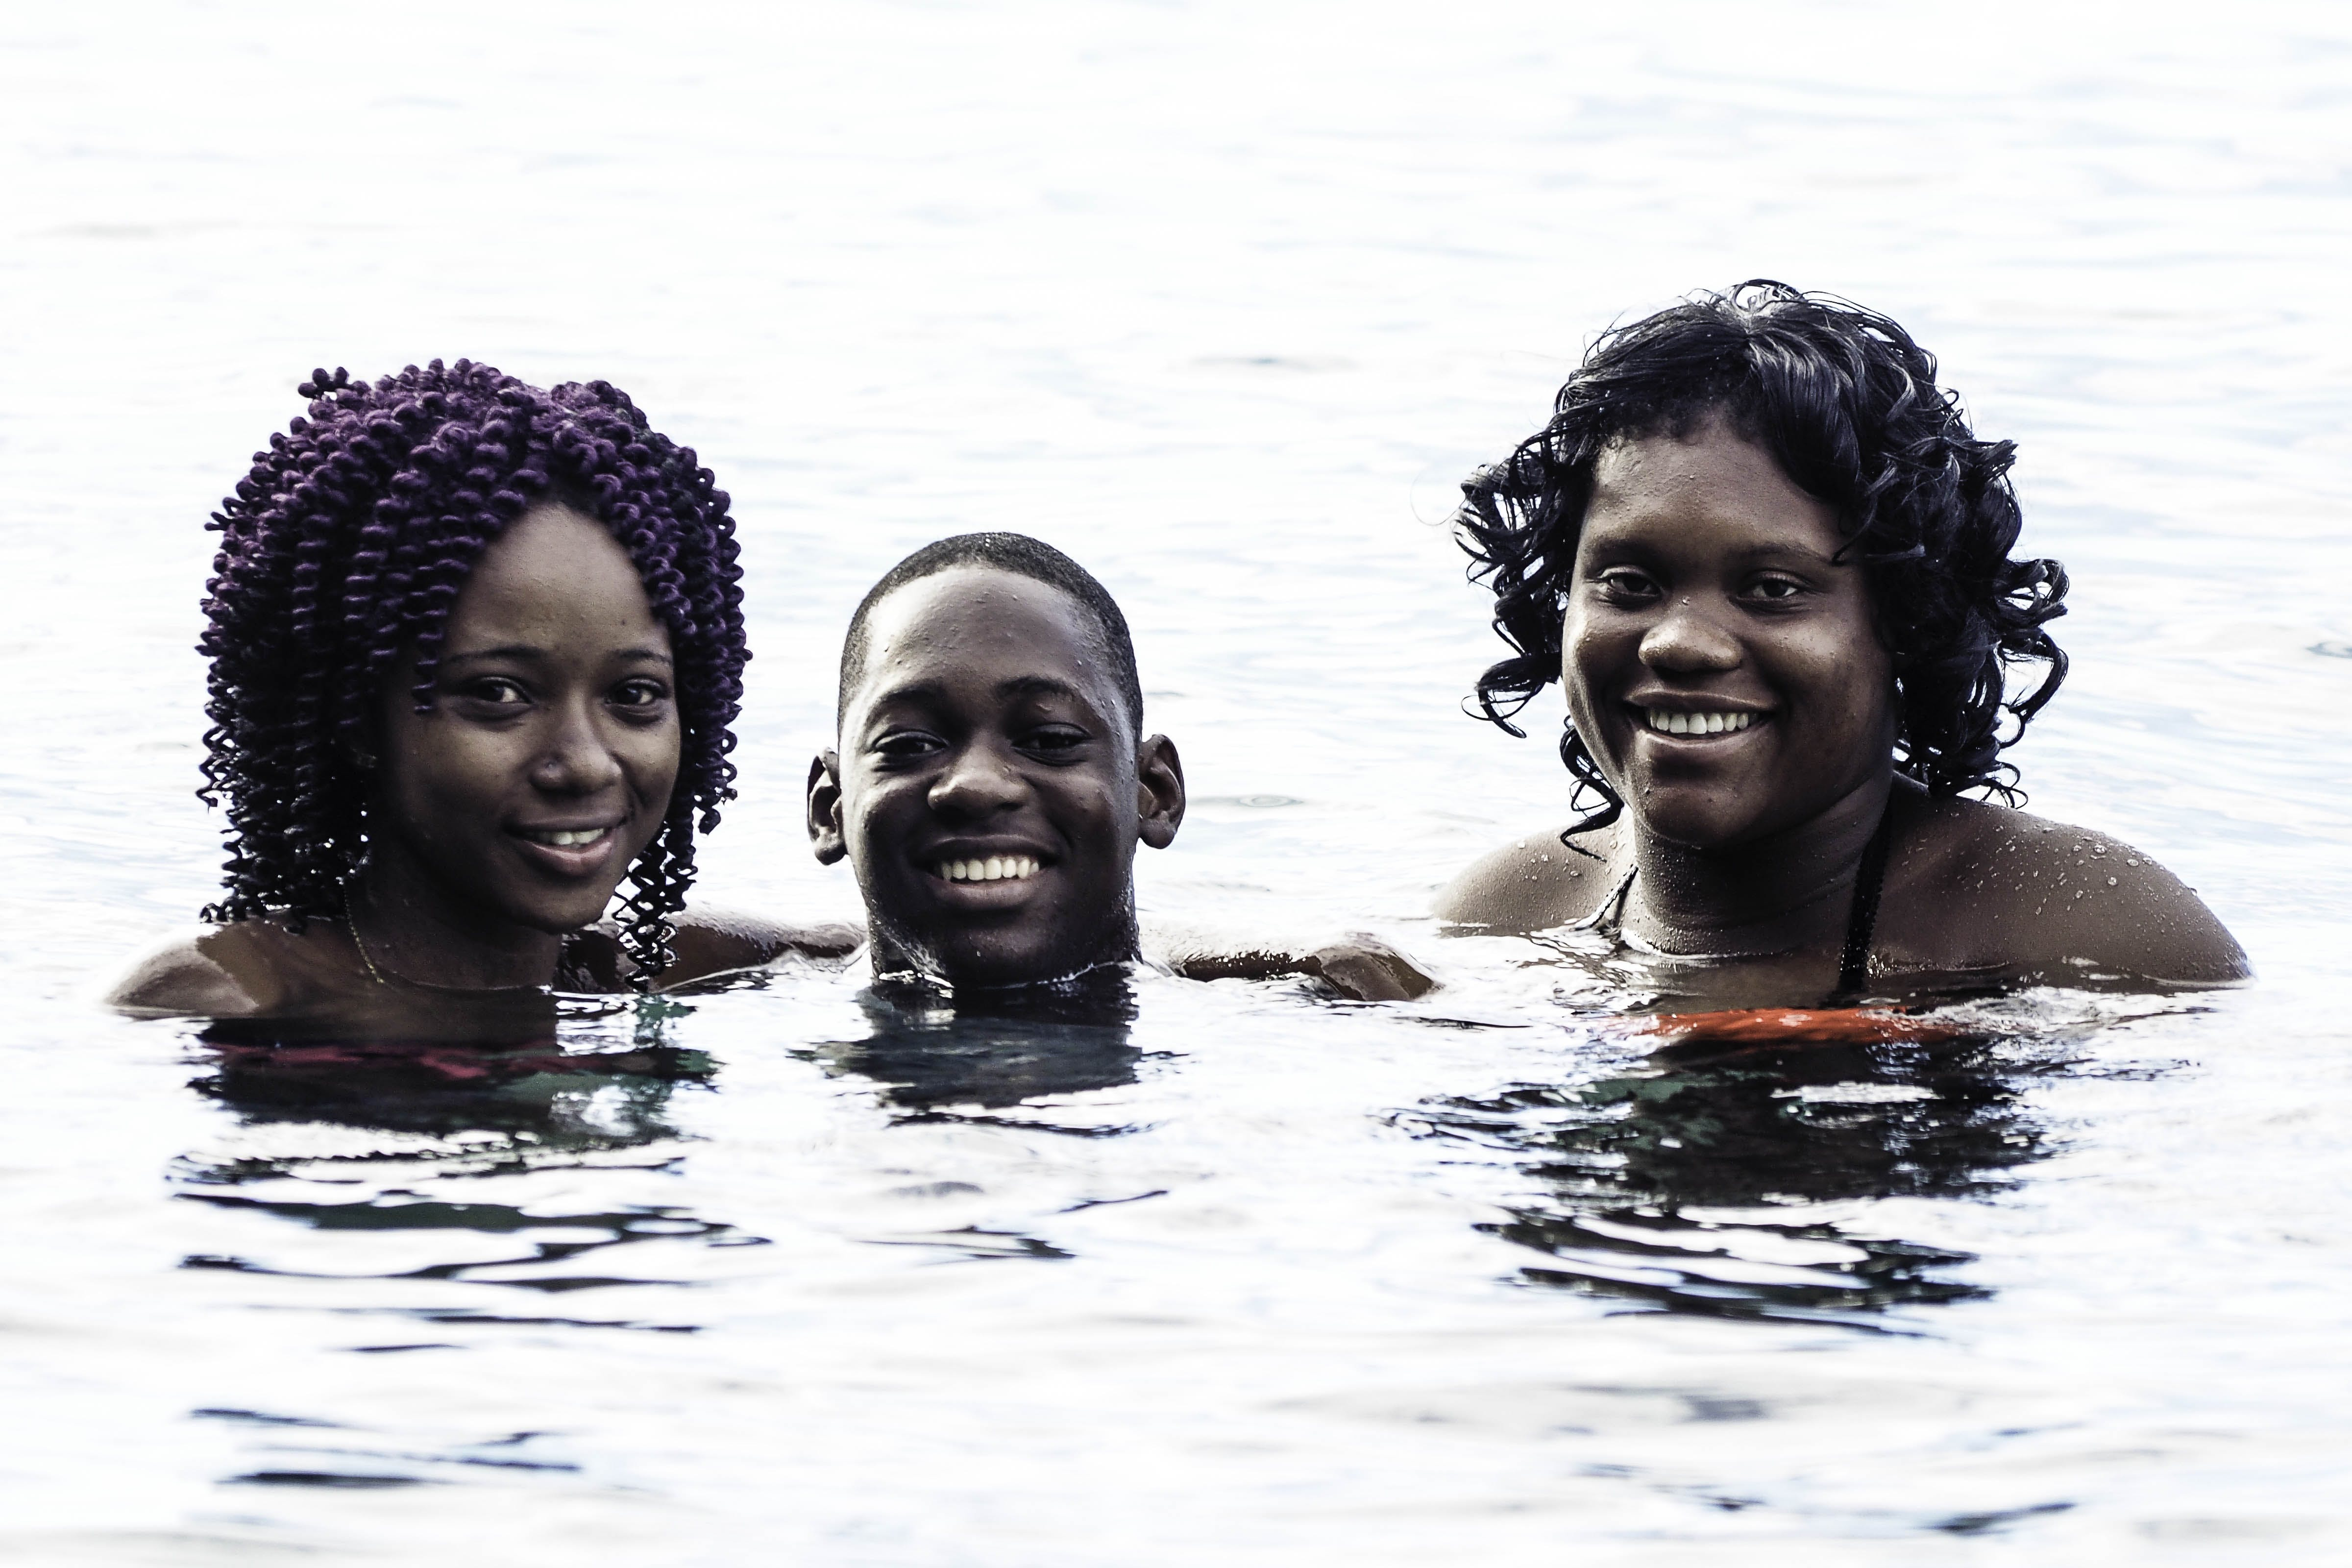 Man And Women Soaking In Body Of Water